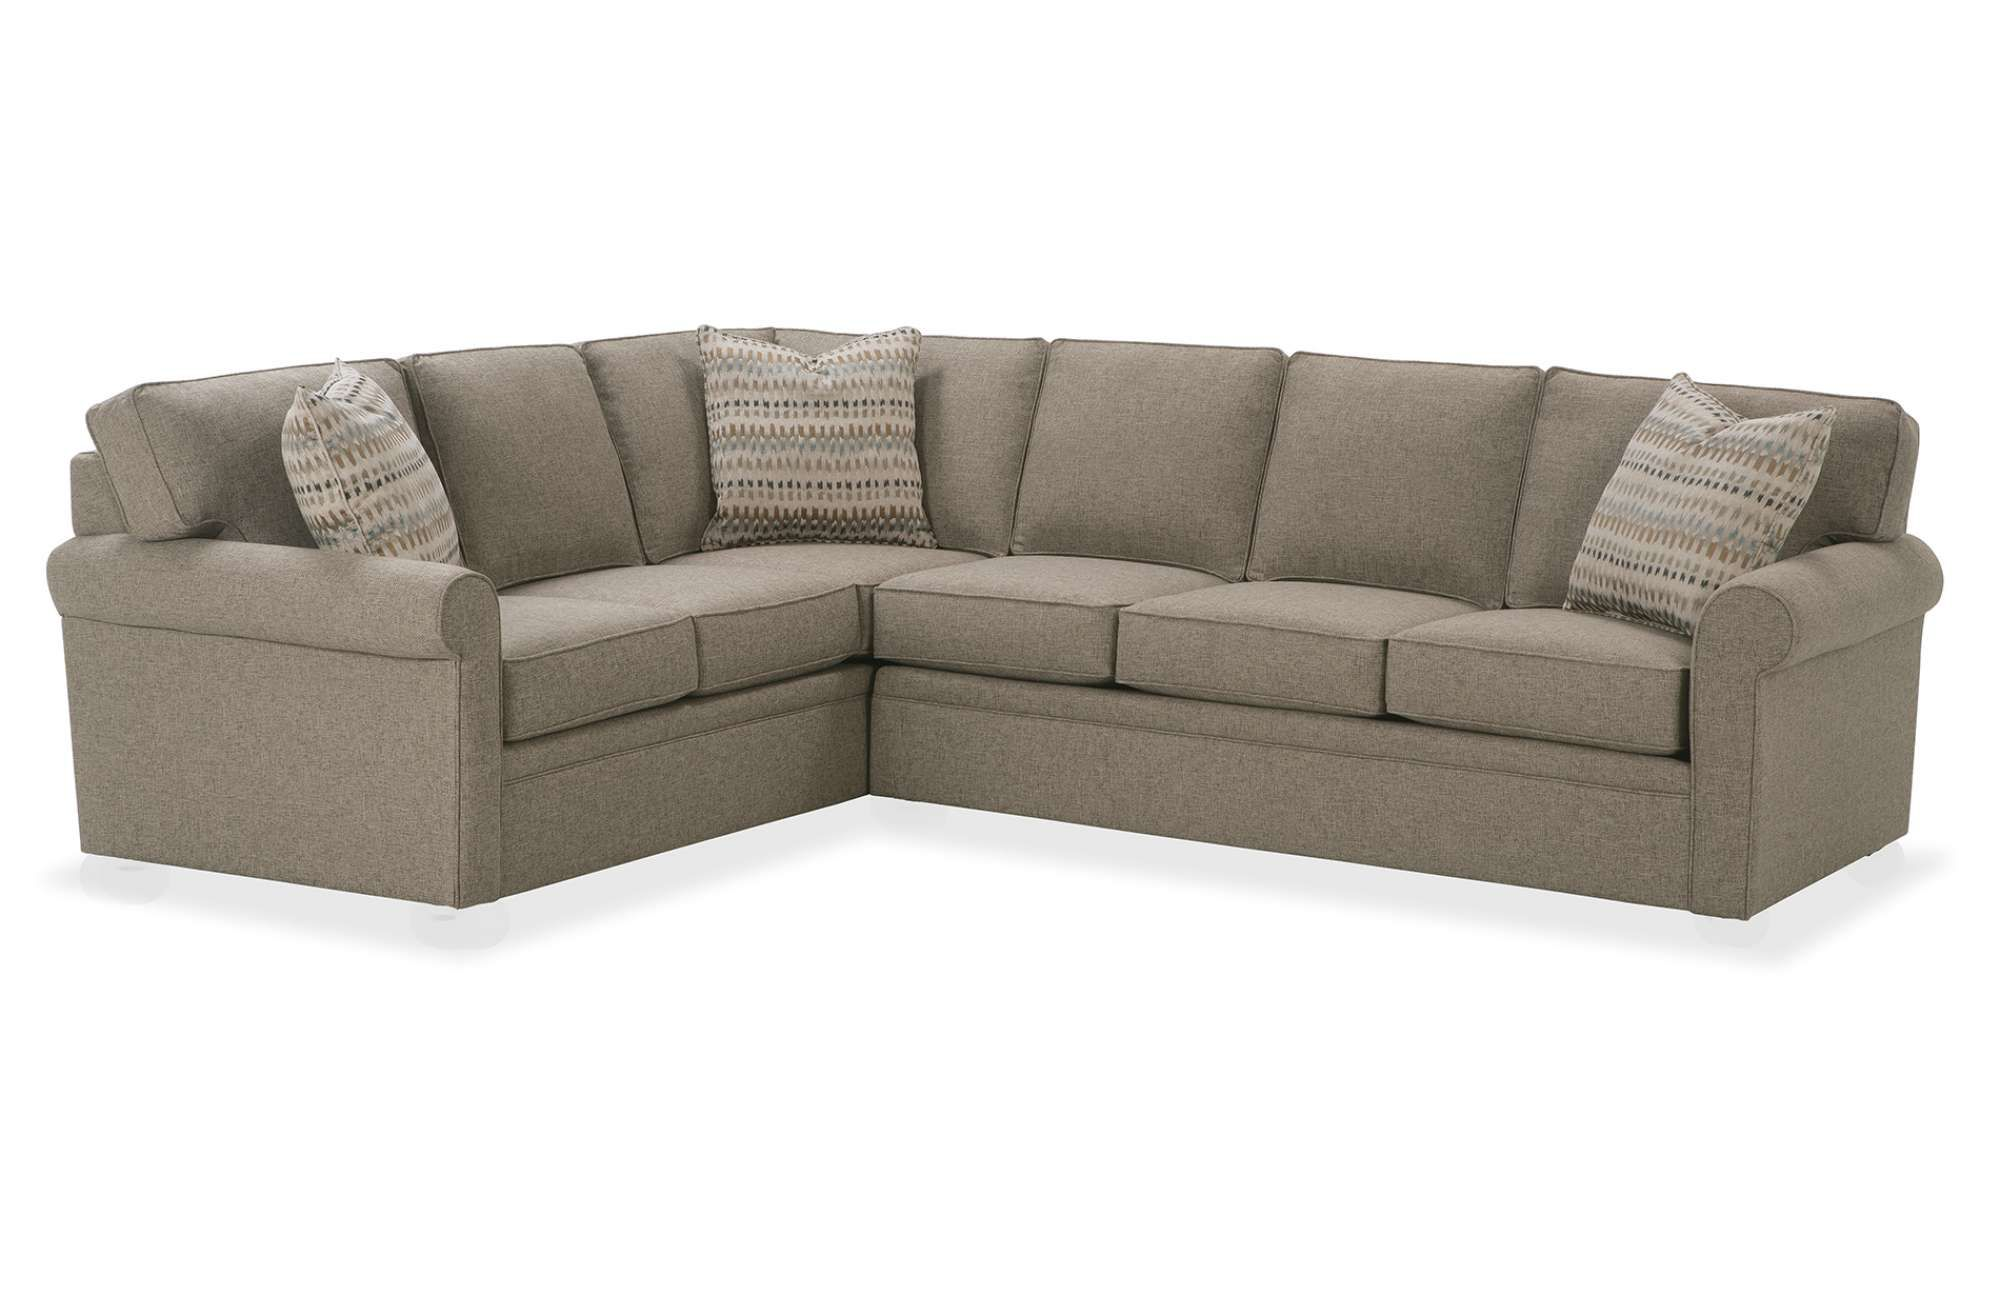 Furniture Rowe Sofa Slipcover Replacement Buying Tips For Rowe Sofa